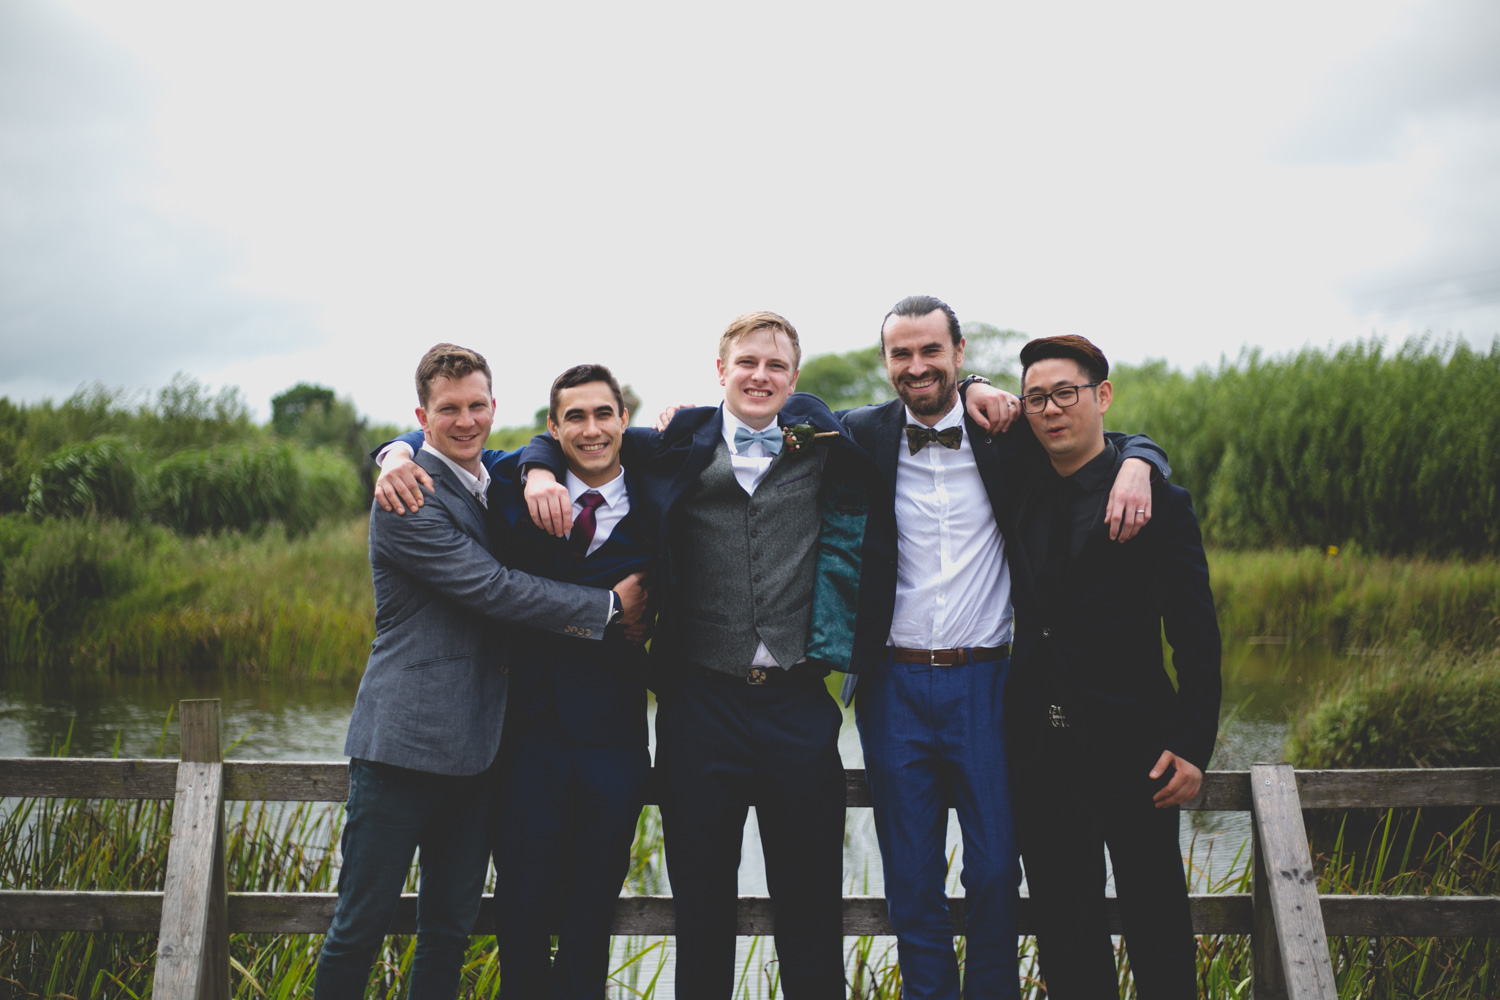 Groom and groomsmen hugging at lakeside wedding